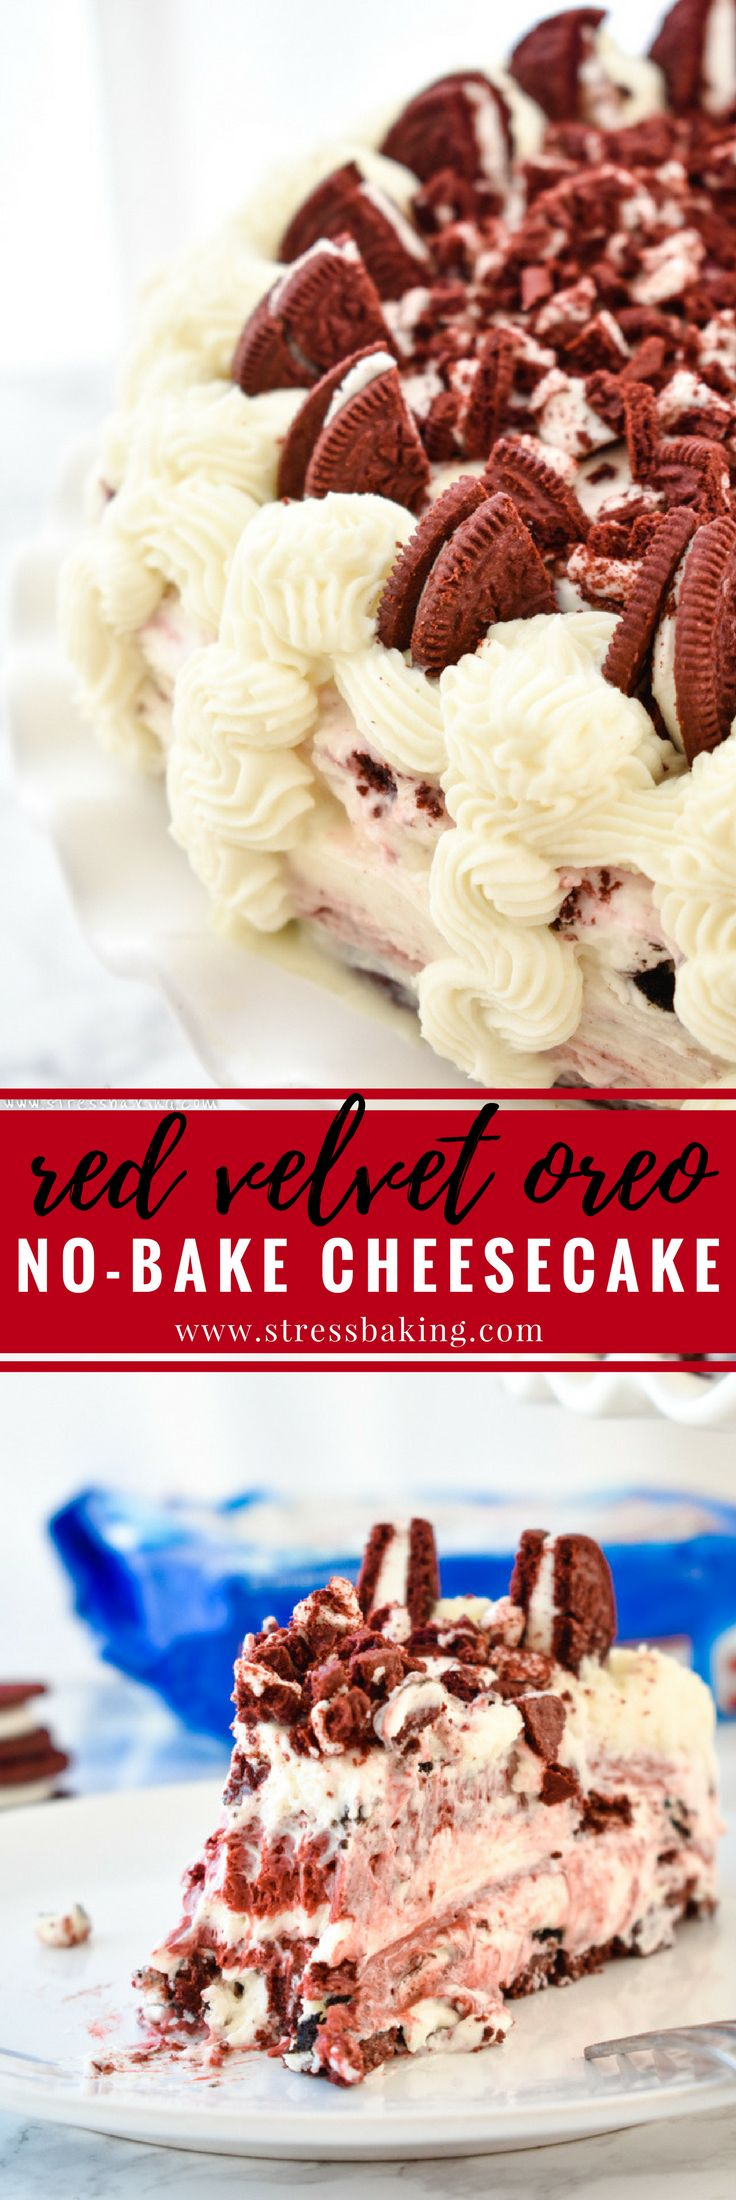 Red Velvet Oreo No-Bake Cheesecake: Supremely rich and creamy cheesecake filled with red velvet and Oreo flavors atop a Red Velvet Oreo crust. No baking required!